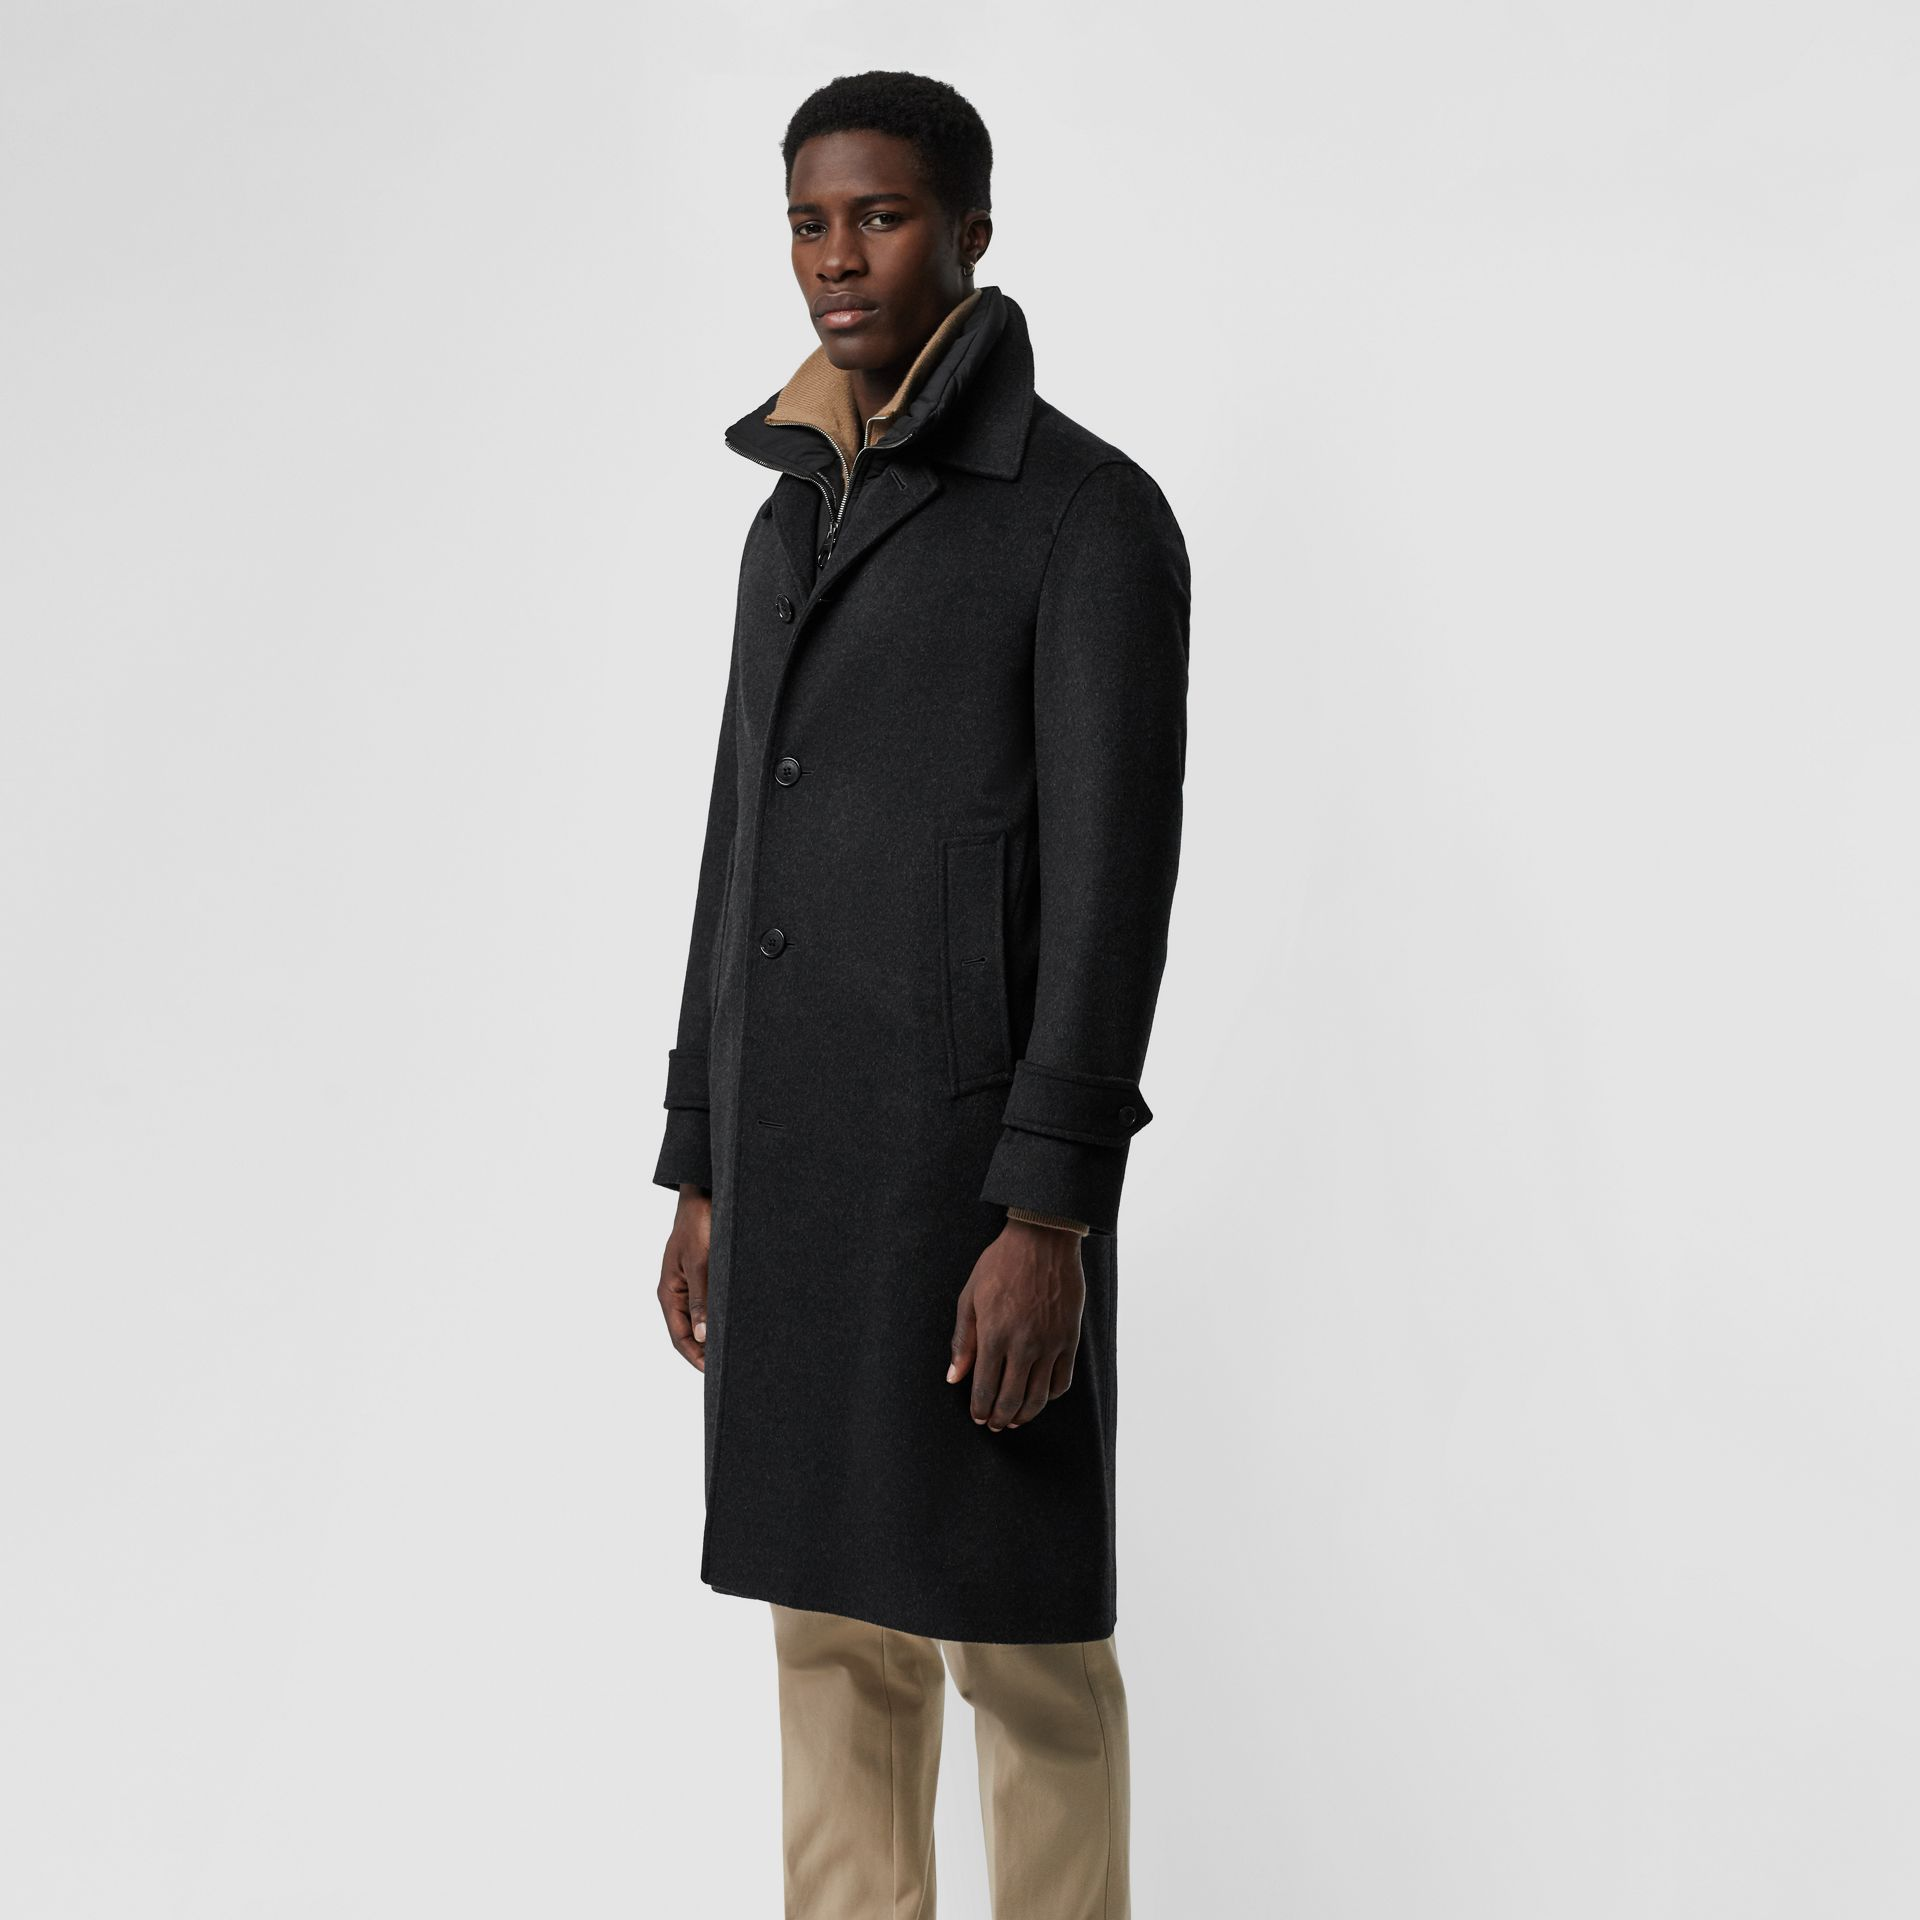 Wool Cashmere Car Coat with Detachable Gilet in Dark Grey Melange - Men | Burberry - gallery image 5